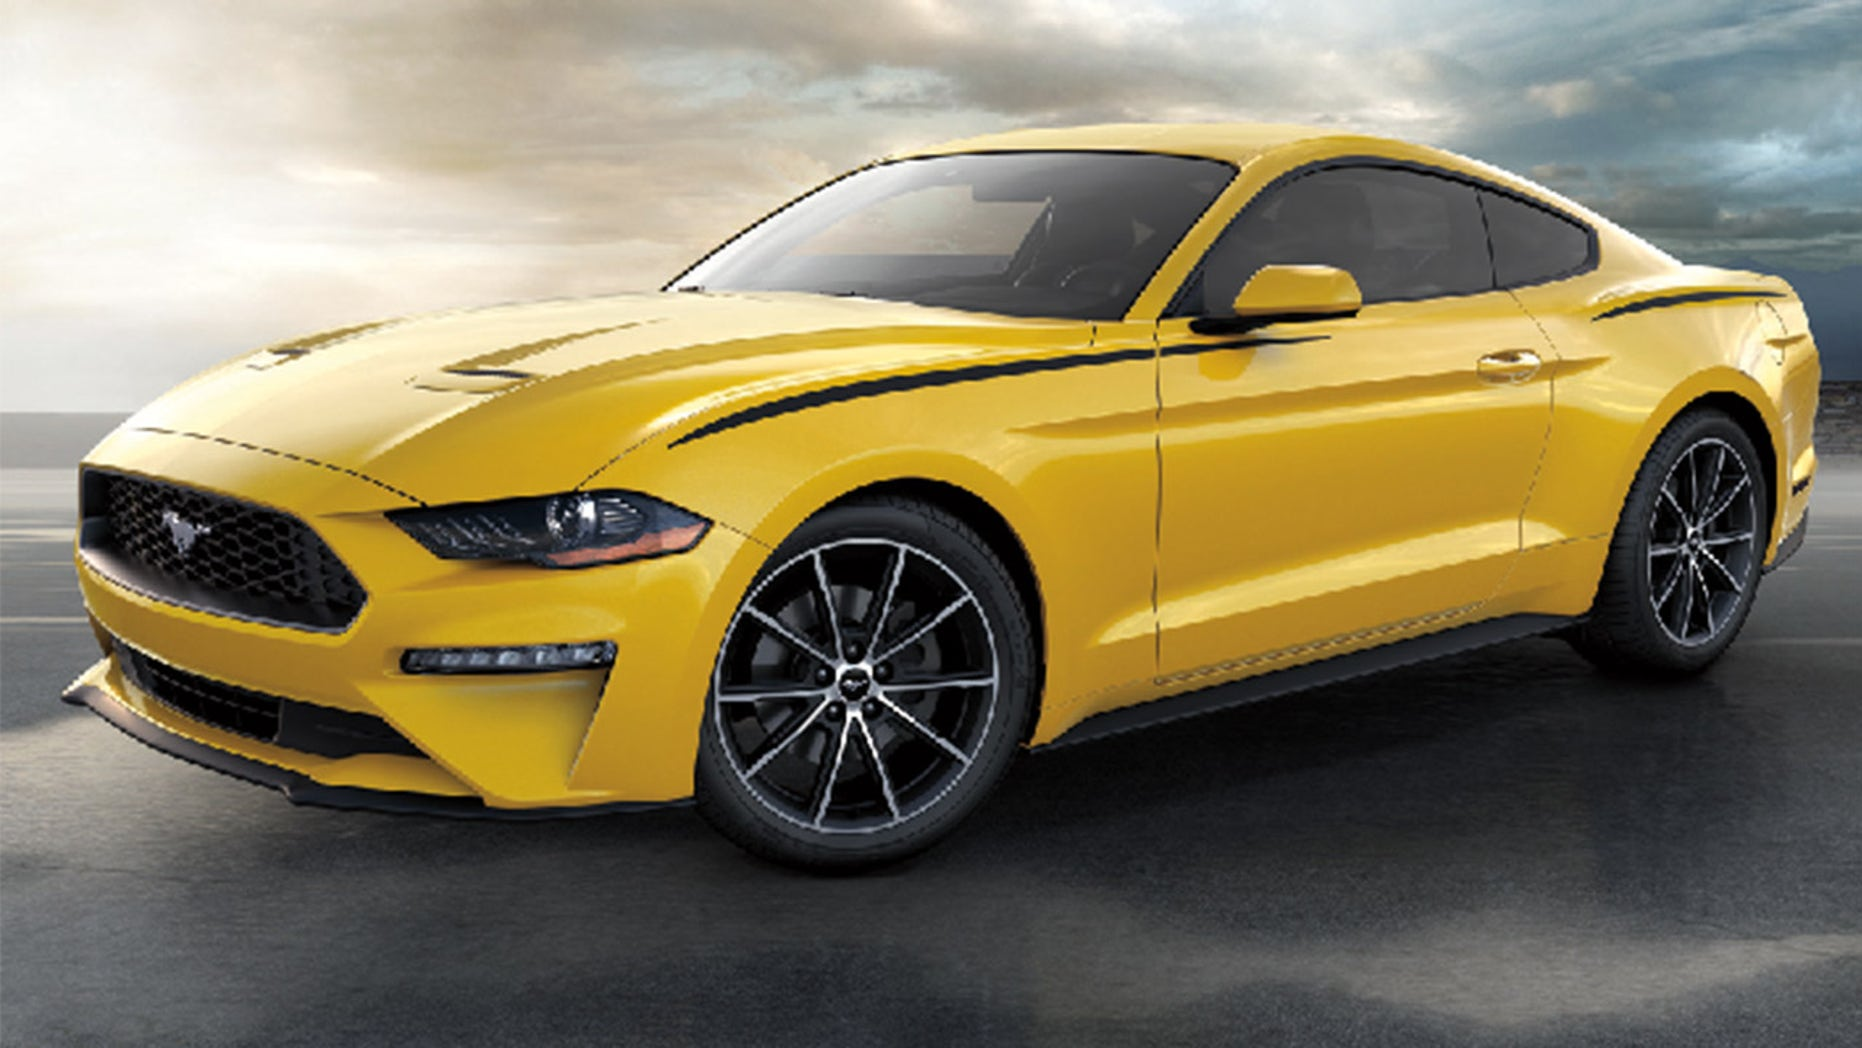 Wilson was driving a yellow 2018 Ford Mustang similar to this one.